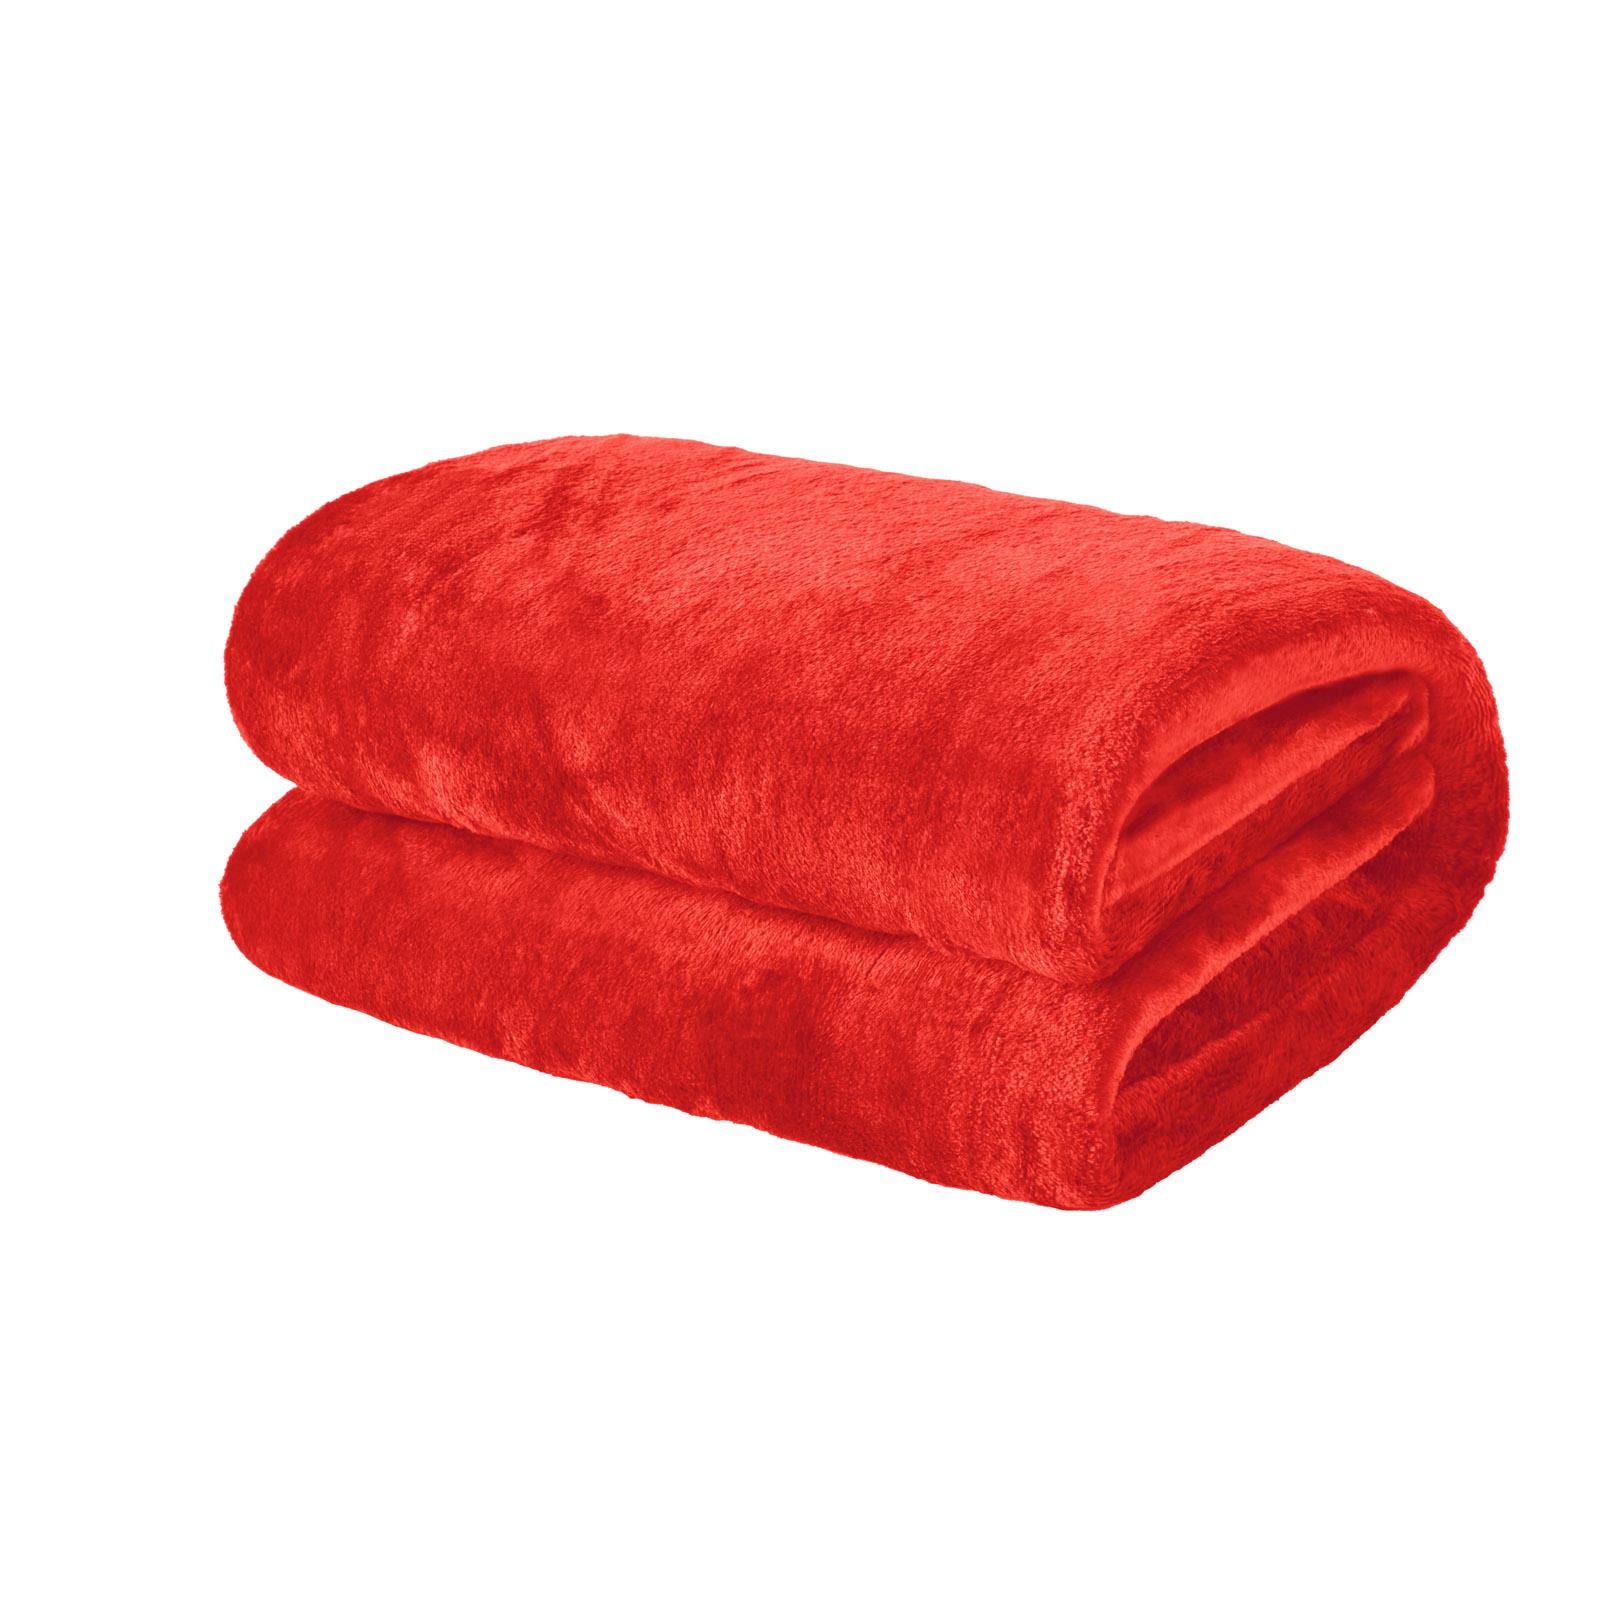 thumbnail 3 - Brentfords Large Flannel Fleece Bed Blanket Warm Throw Over Ultra Soft Bed Sofa